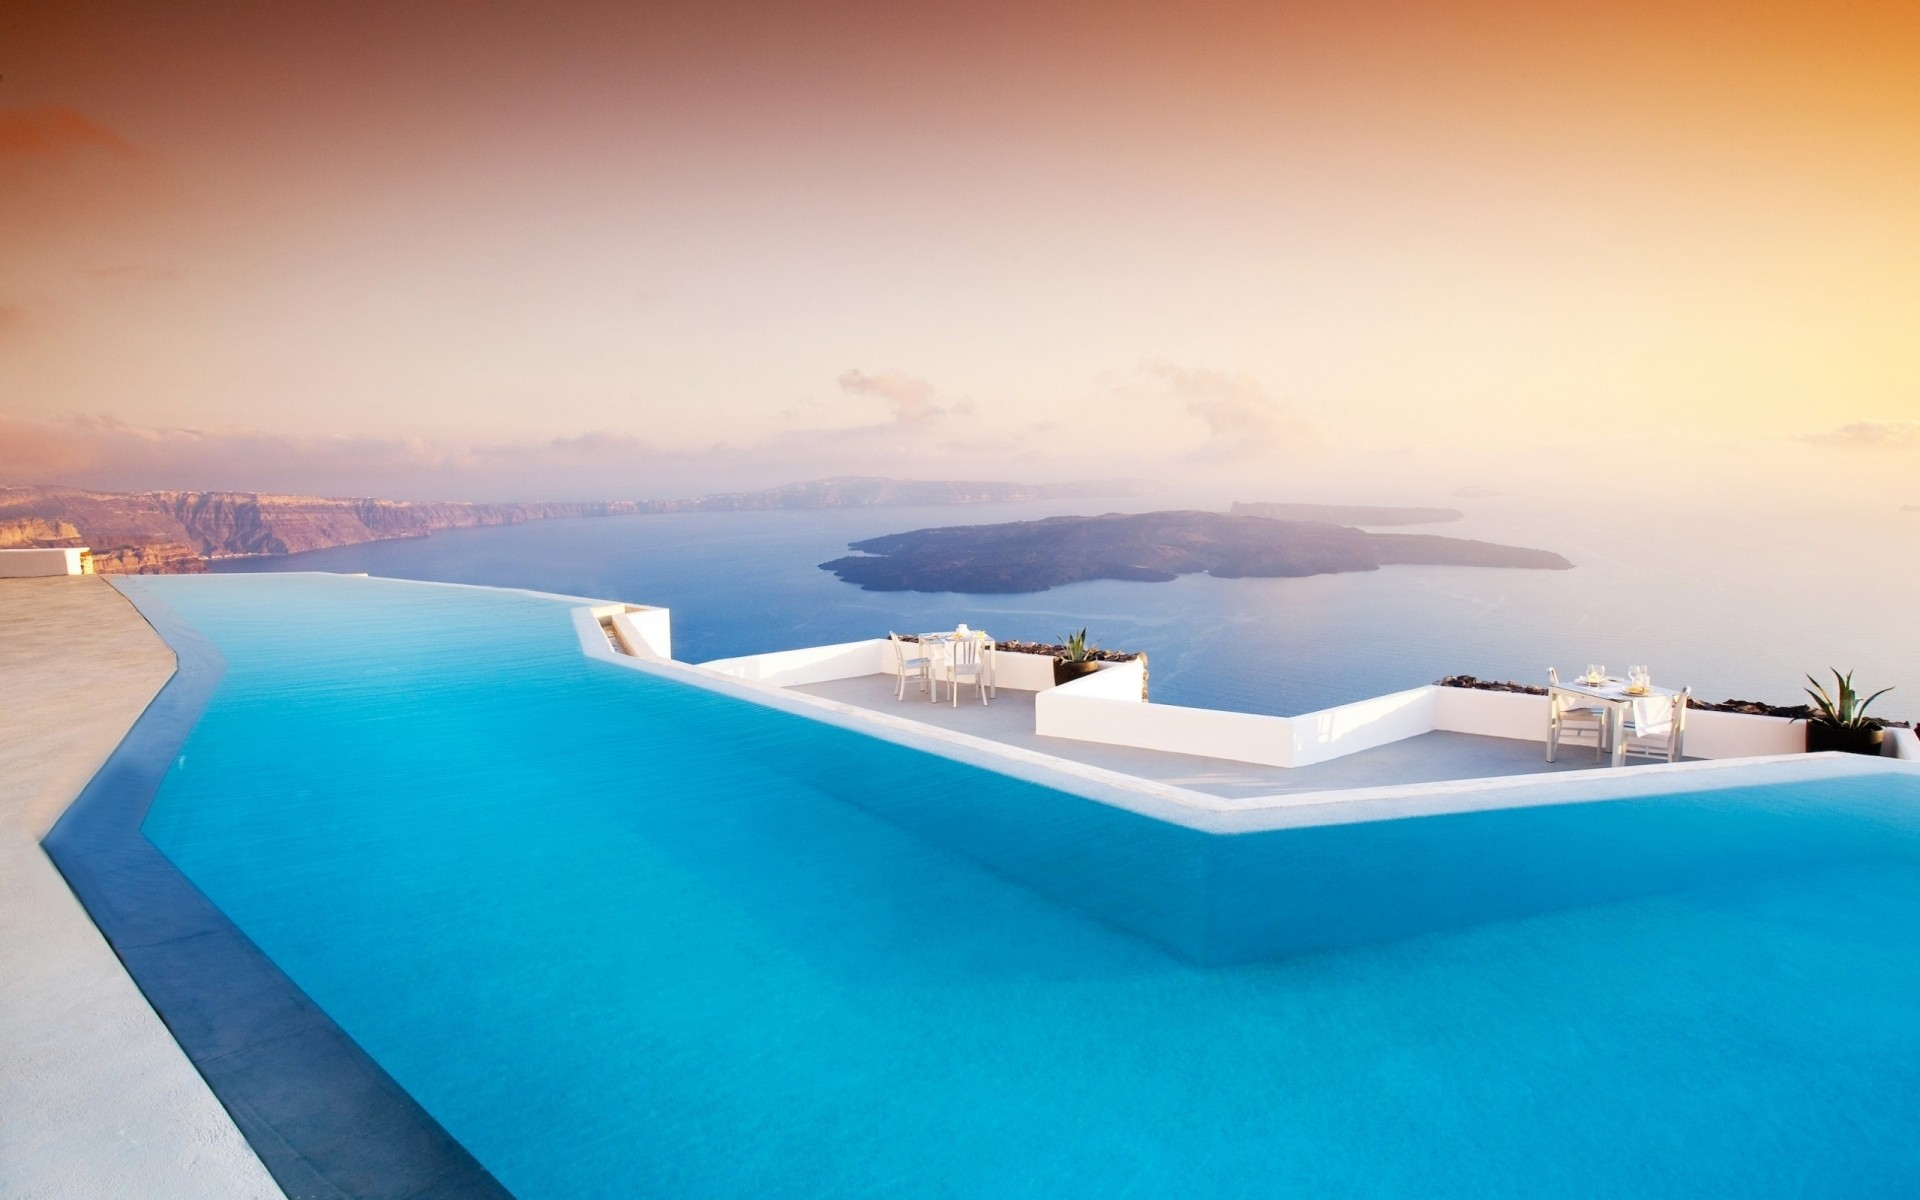 greece water travel tropical sun island vacation beach summer sea idyllic relaxation ocean exotic luxury seashore turquoise seascape fair weather leisure santorini pool landscape